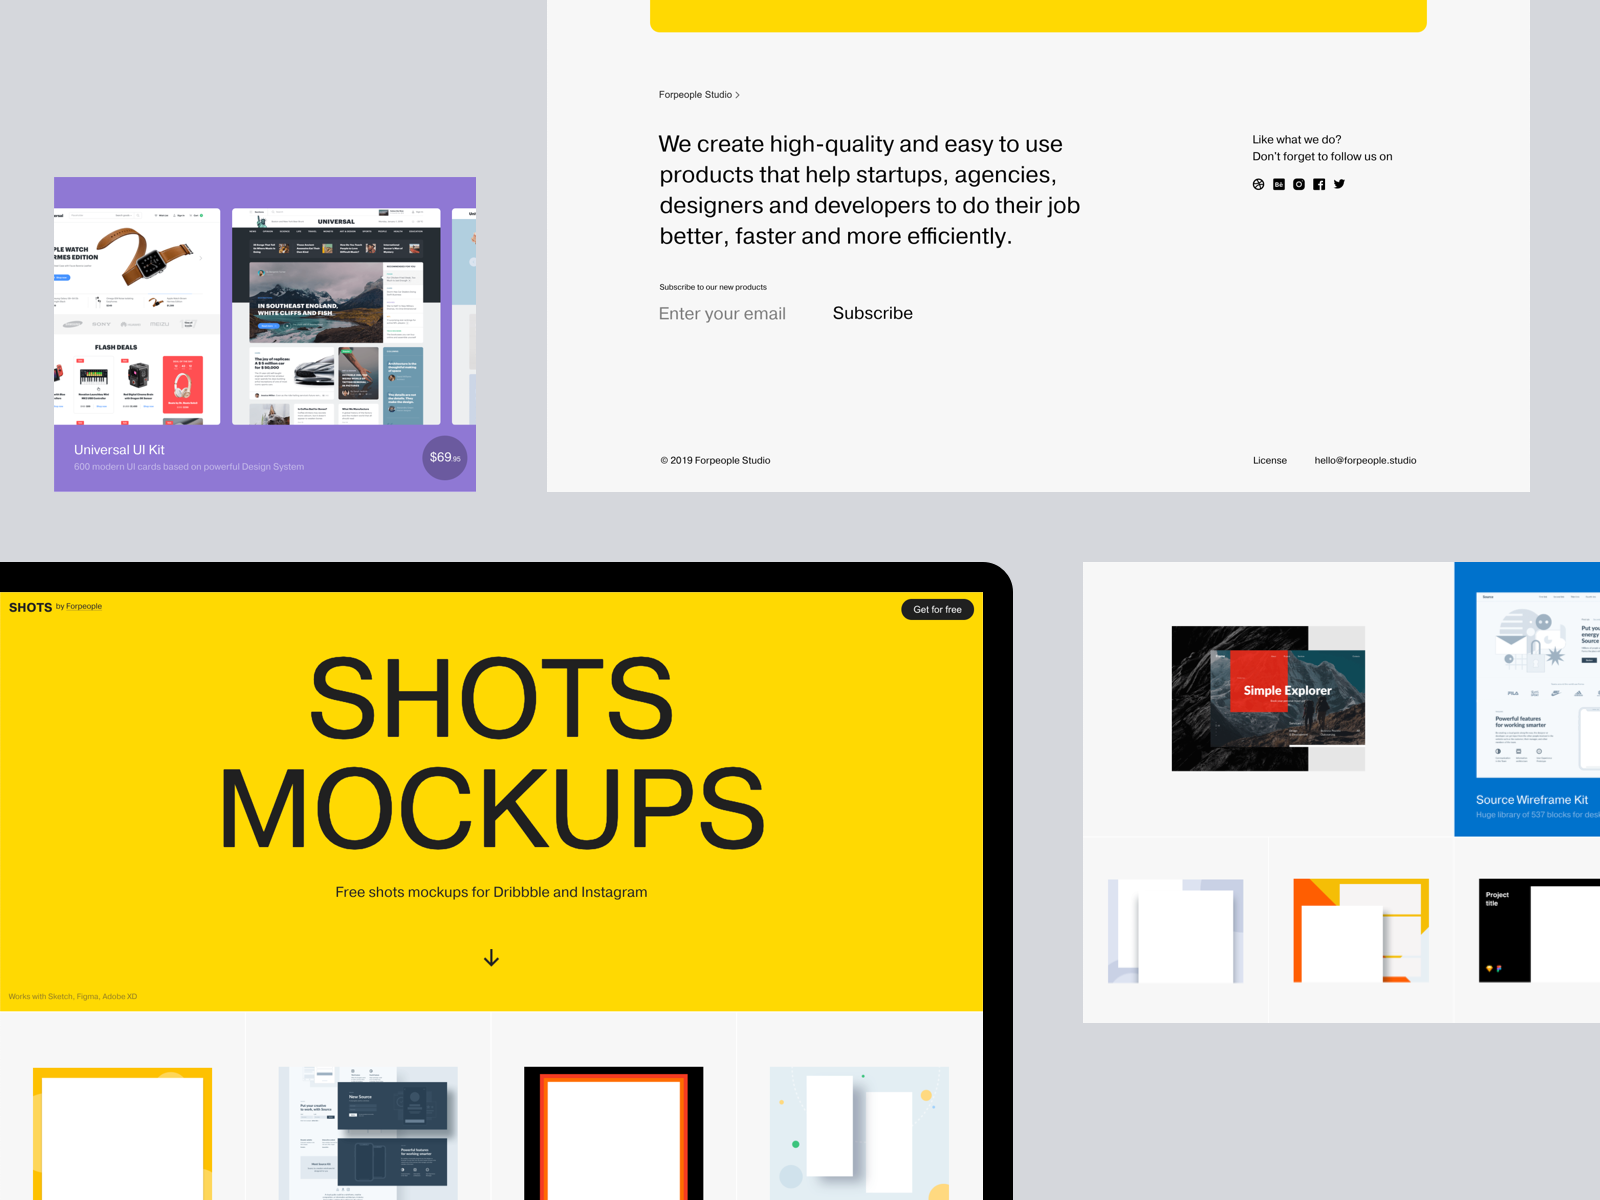 Free Shots Mockups for Dribbble and Instagram by Max